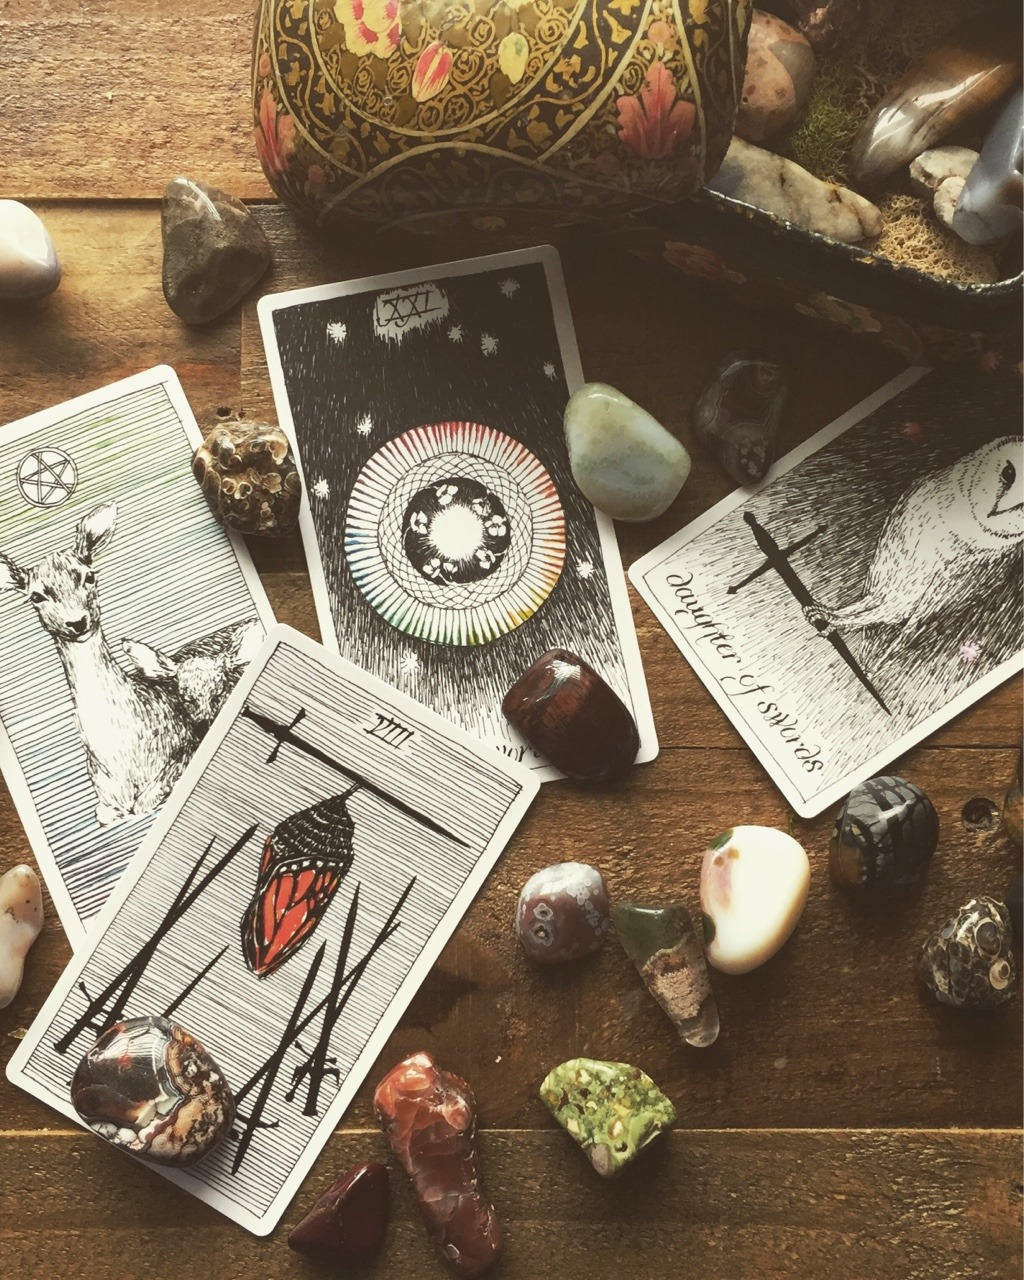 The Wild Unknown: My All Time Favourite Deck - Ortolana Clare